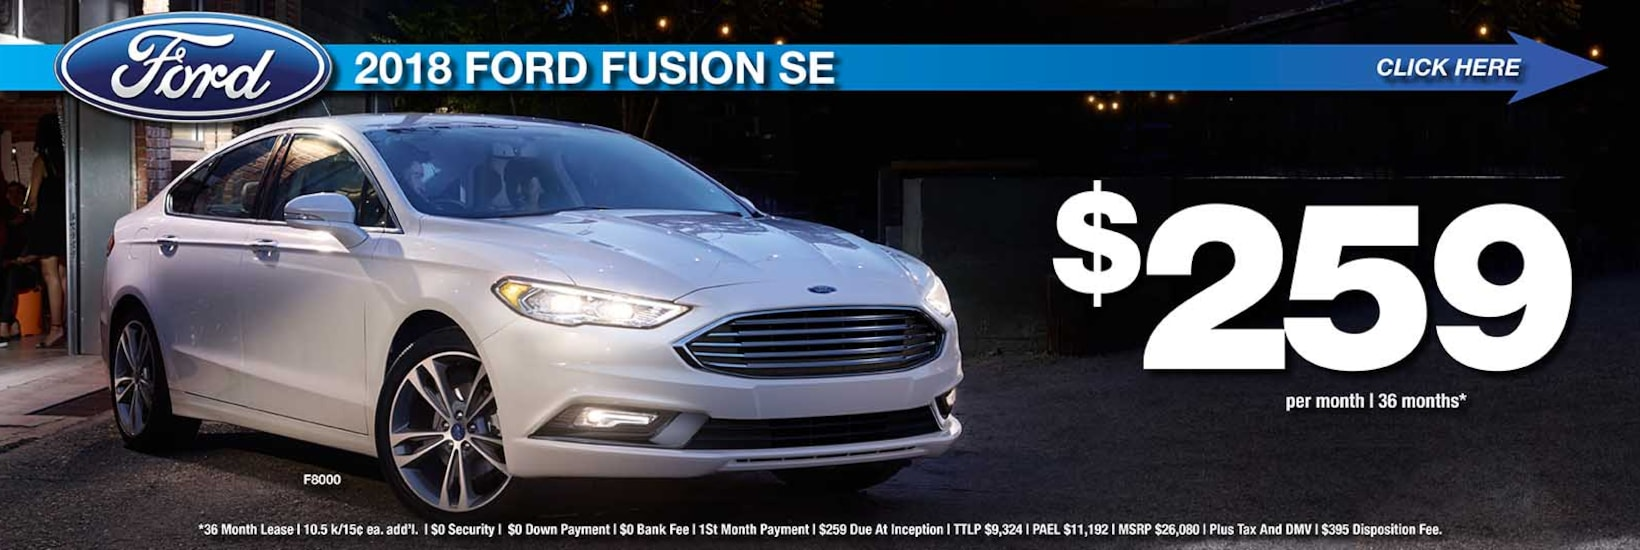 New Ford And Used Car Dealership In Bedford Hills NY - Arroway chevrolet car show